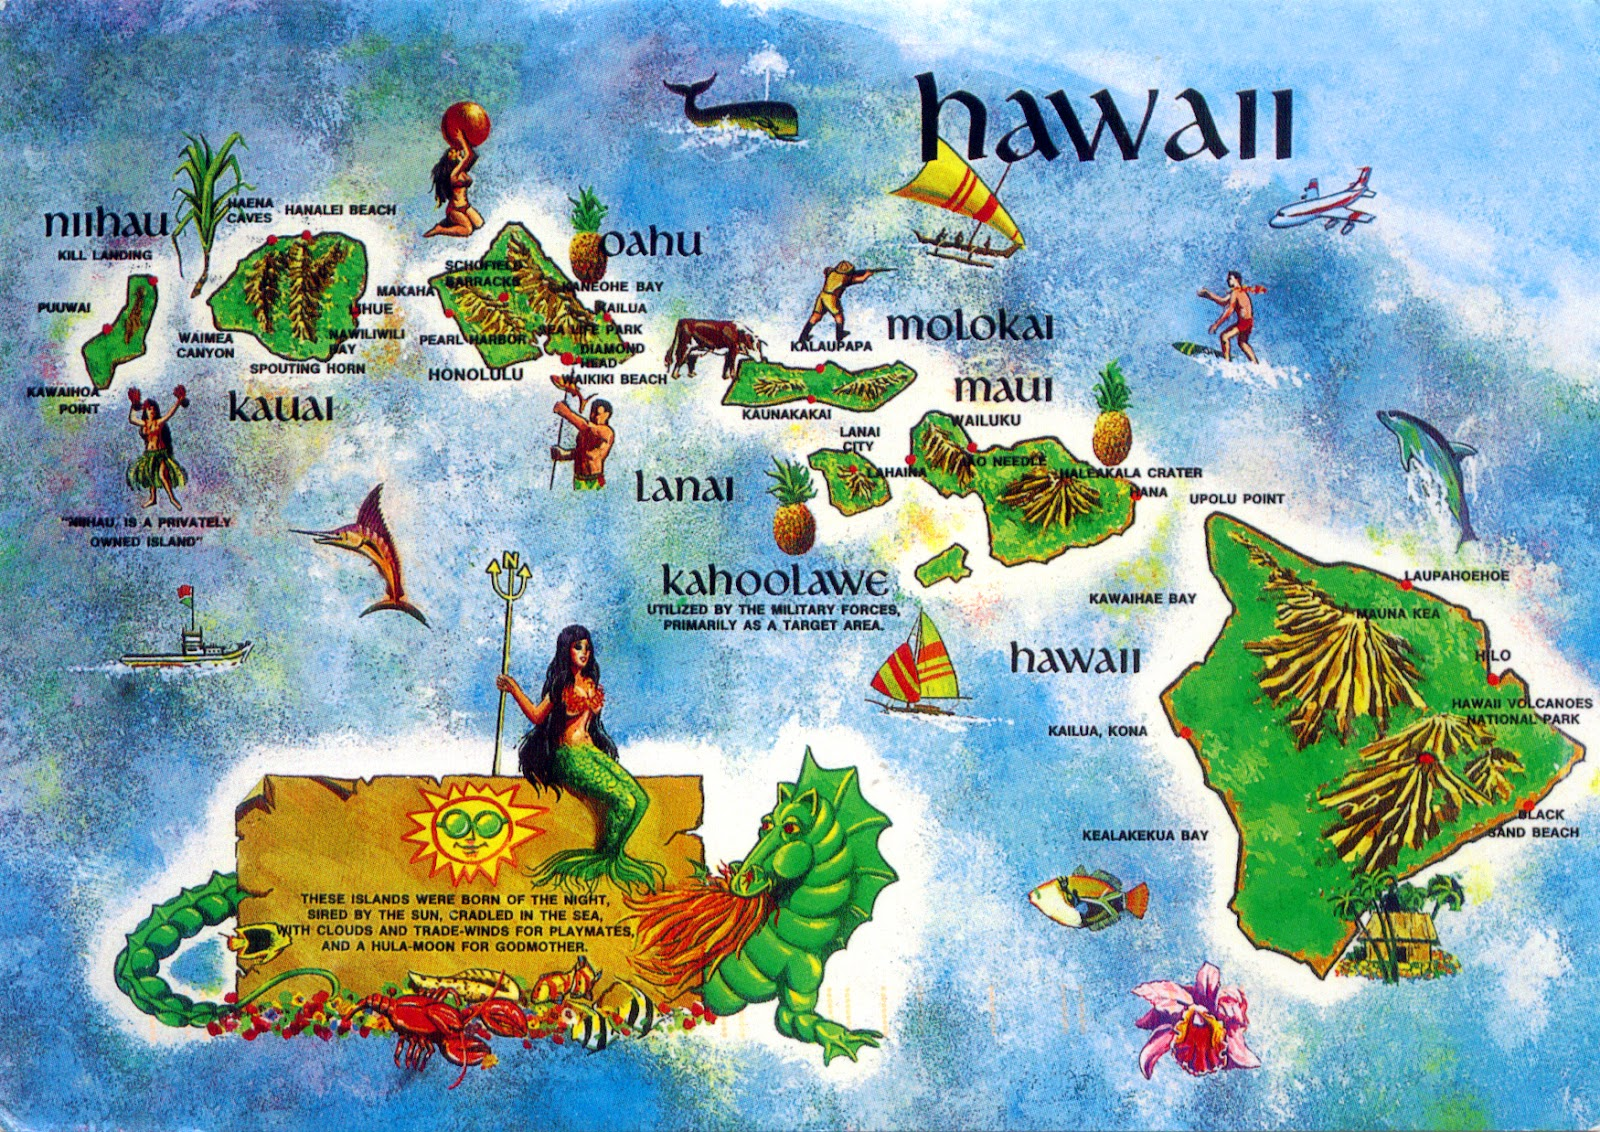 WORLD COME TO MY HOME 0518 2170 UNITED STATES Hawaii Hawaii map